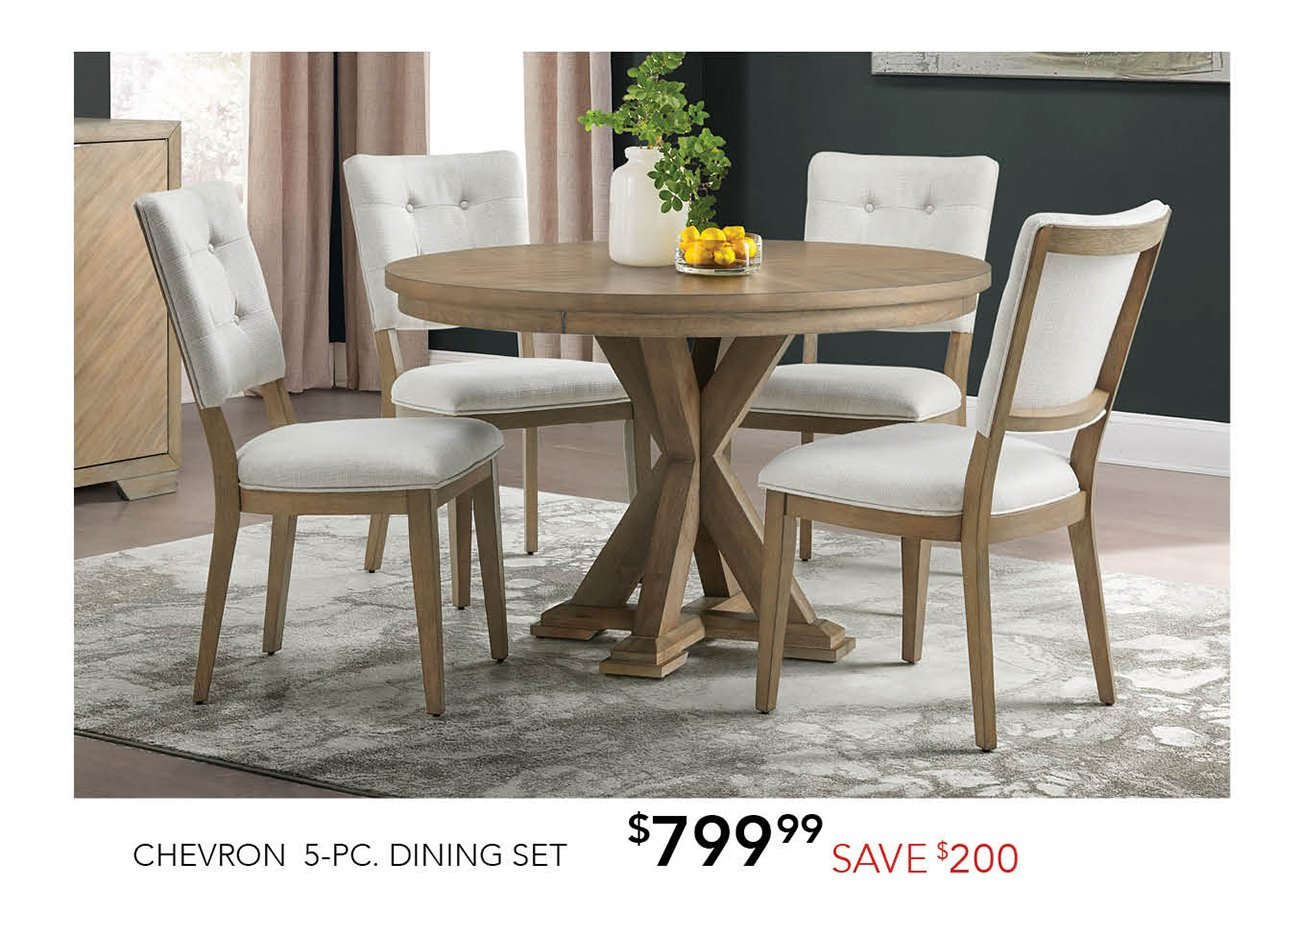 Cheveron-5-pc-dining-set